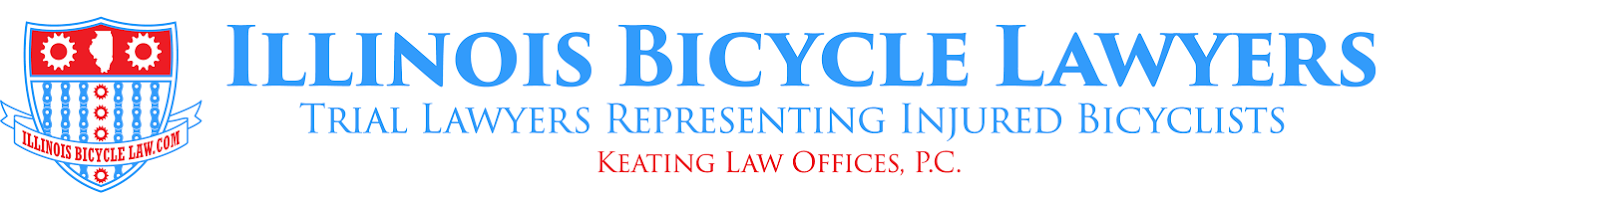 ILLINOIS BICYCLE LAWYERS Chicago, Illinois Bike Accident Personal Injury Attorneys Top In Illinois